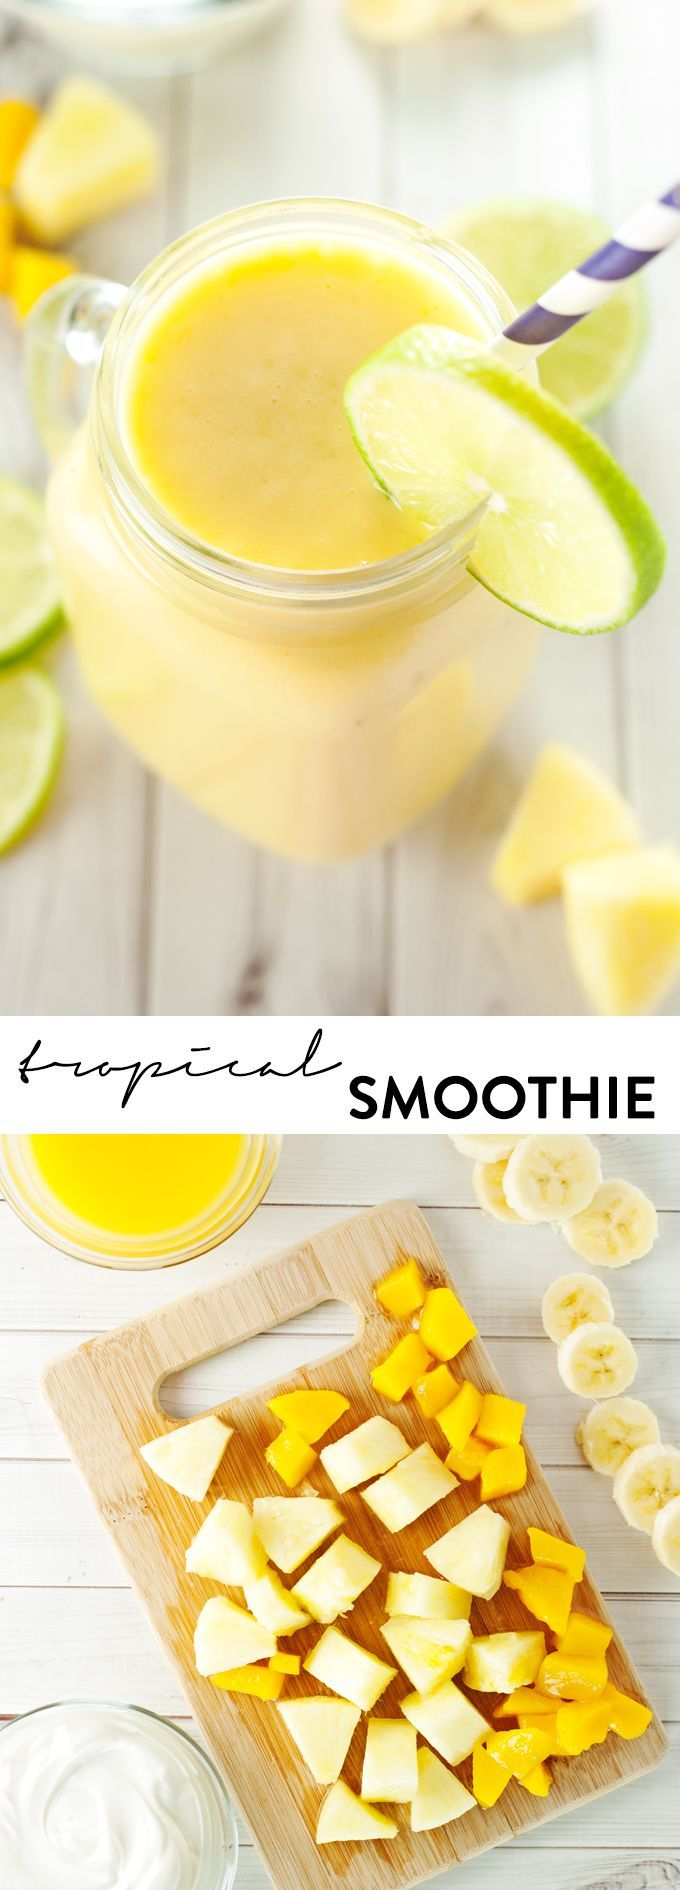 Tropical Smoothie Recipe - via @A Simple Pantry. Bring on the summertime flavors no matter the season with this festive smoothie using Del Monte Diced Mangos.